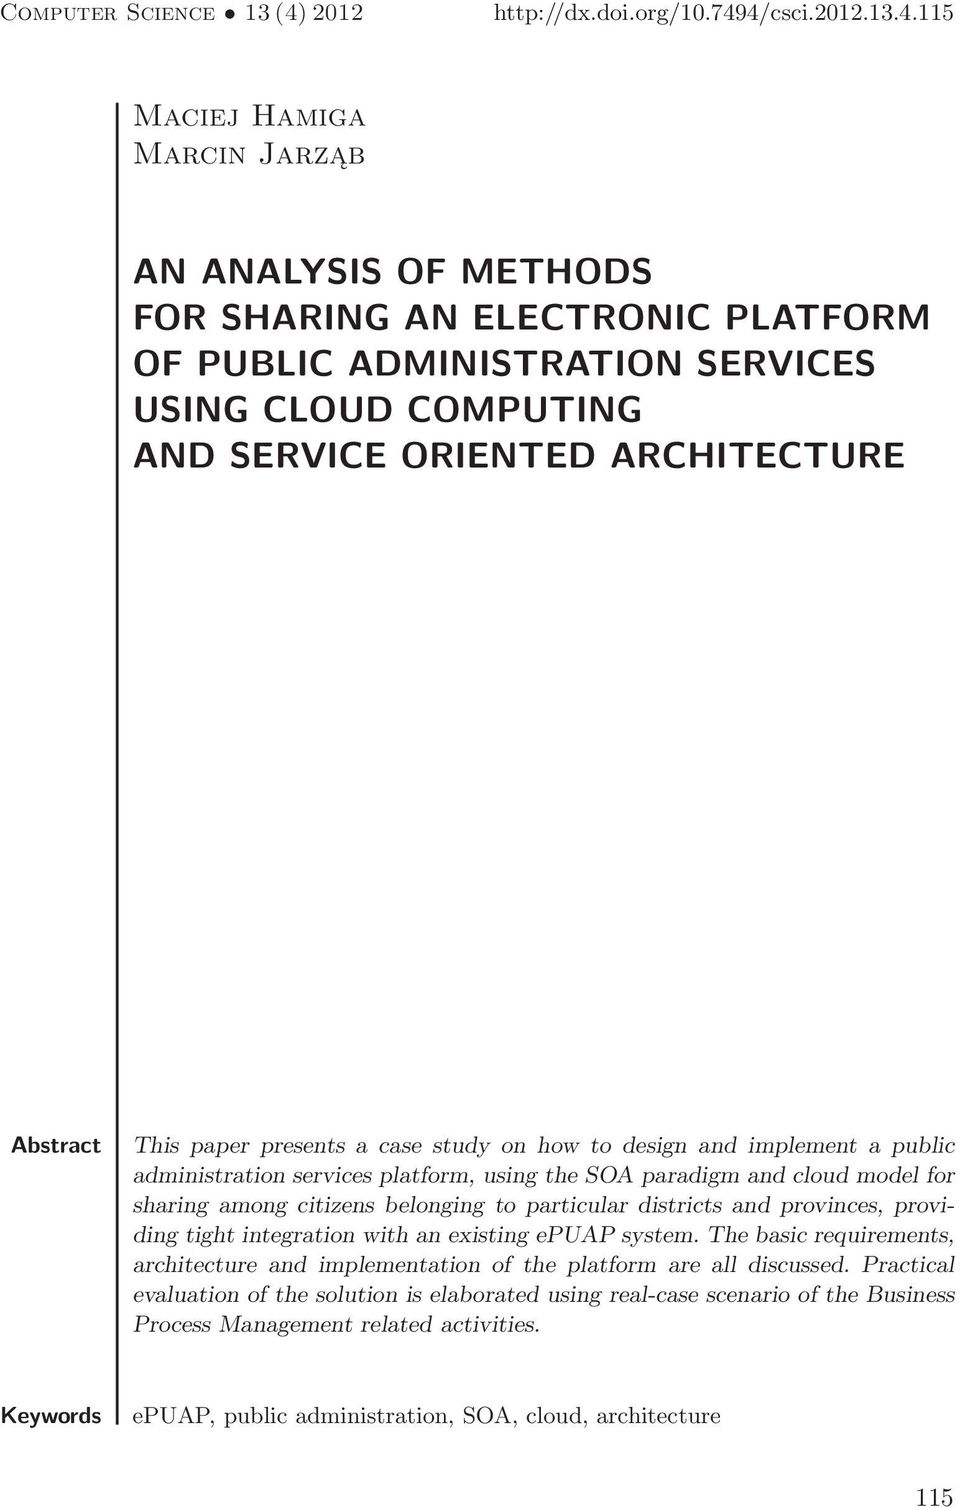 4/csci.2012.13.4.115 Maciej Hamiga Marcin Jarząb AN ANALYSIS OF METHODS FOR SHARING AN ELECTRONIC PLATFORM OF PUBLIC ADMINISTRATION SERVICES USING CLOUD COMPUTING AND SERVICE ORIENTED ARCHITECTURE